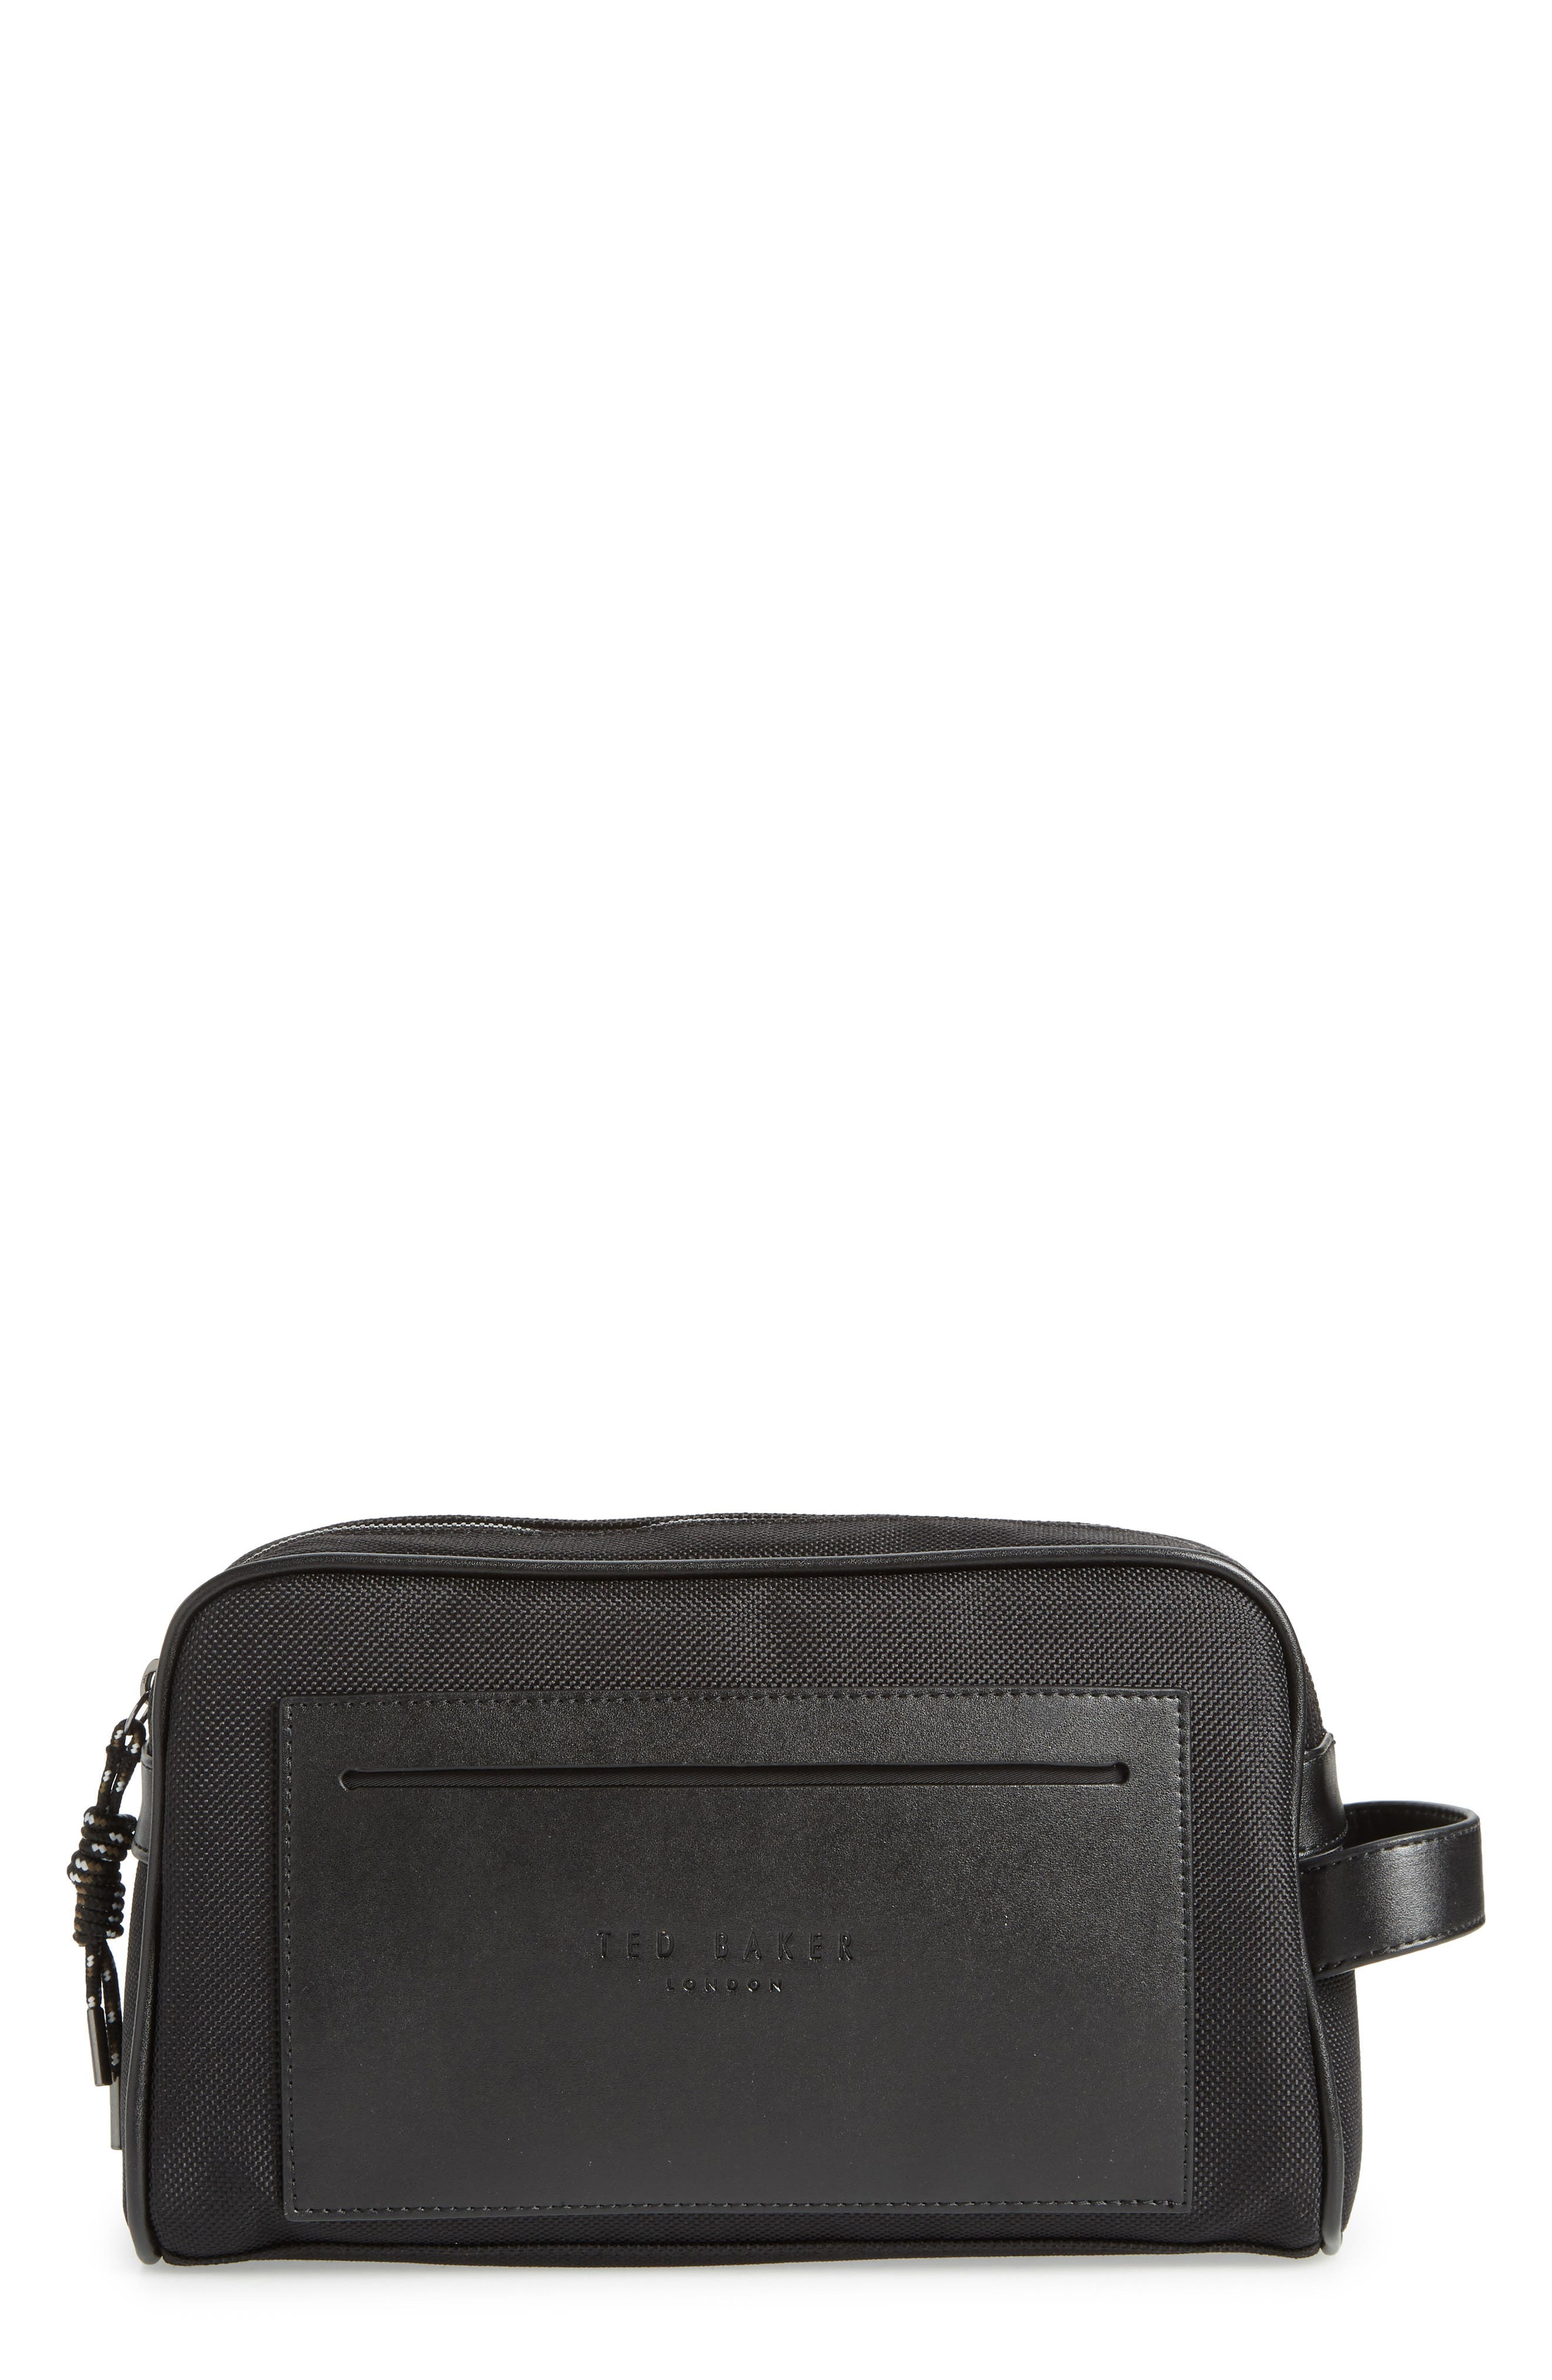 TED BAKER LONDON Blends Dopp Kit, Main, color, BLACK